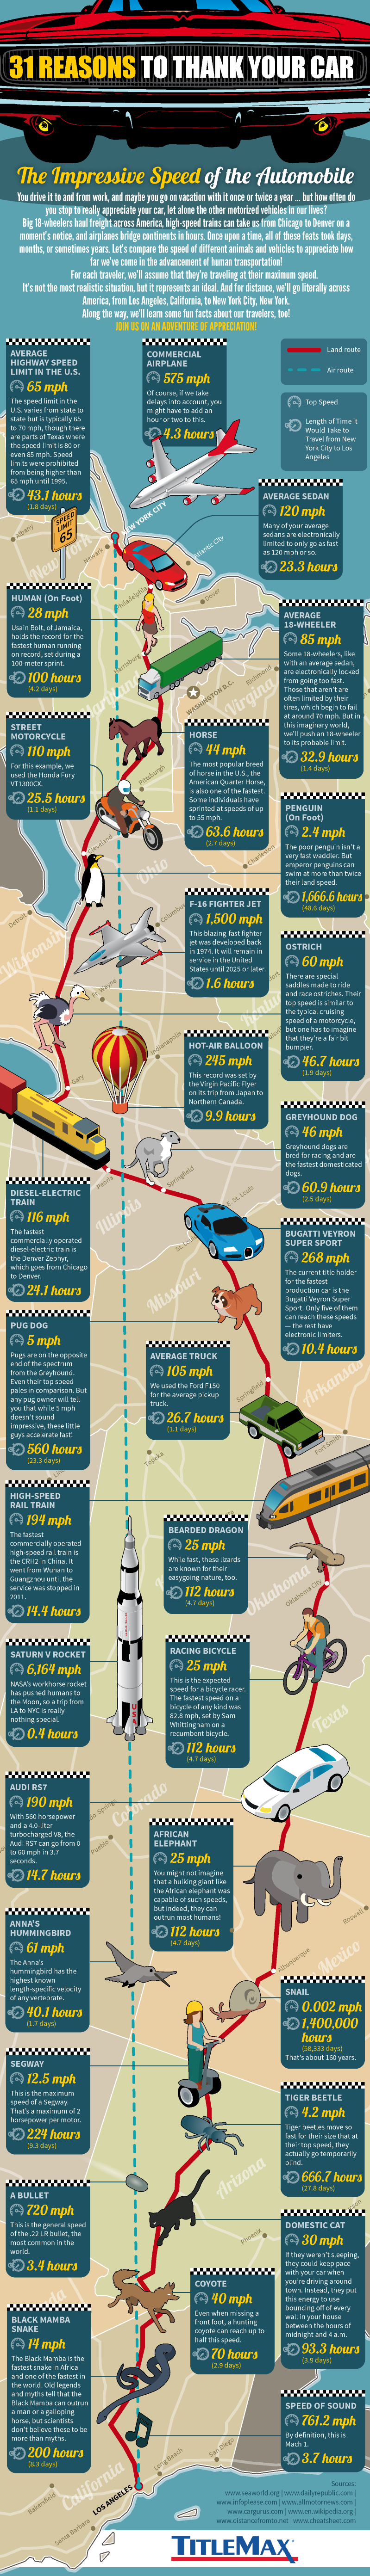 31 Reasons to Thank Your Car